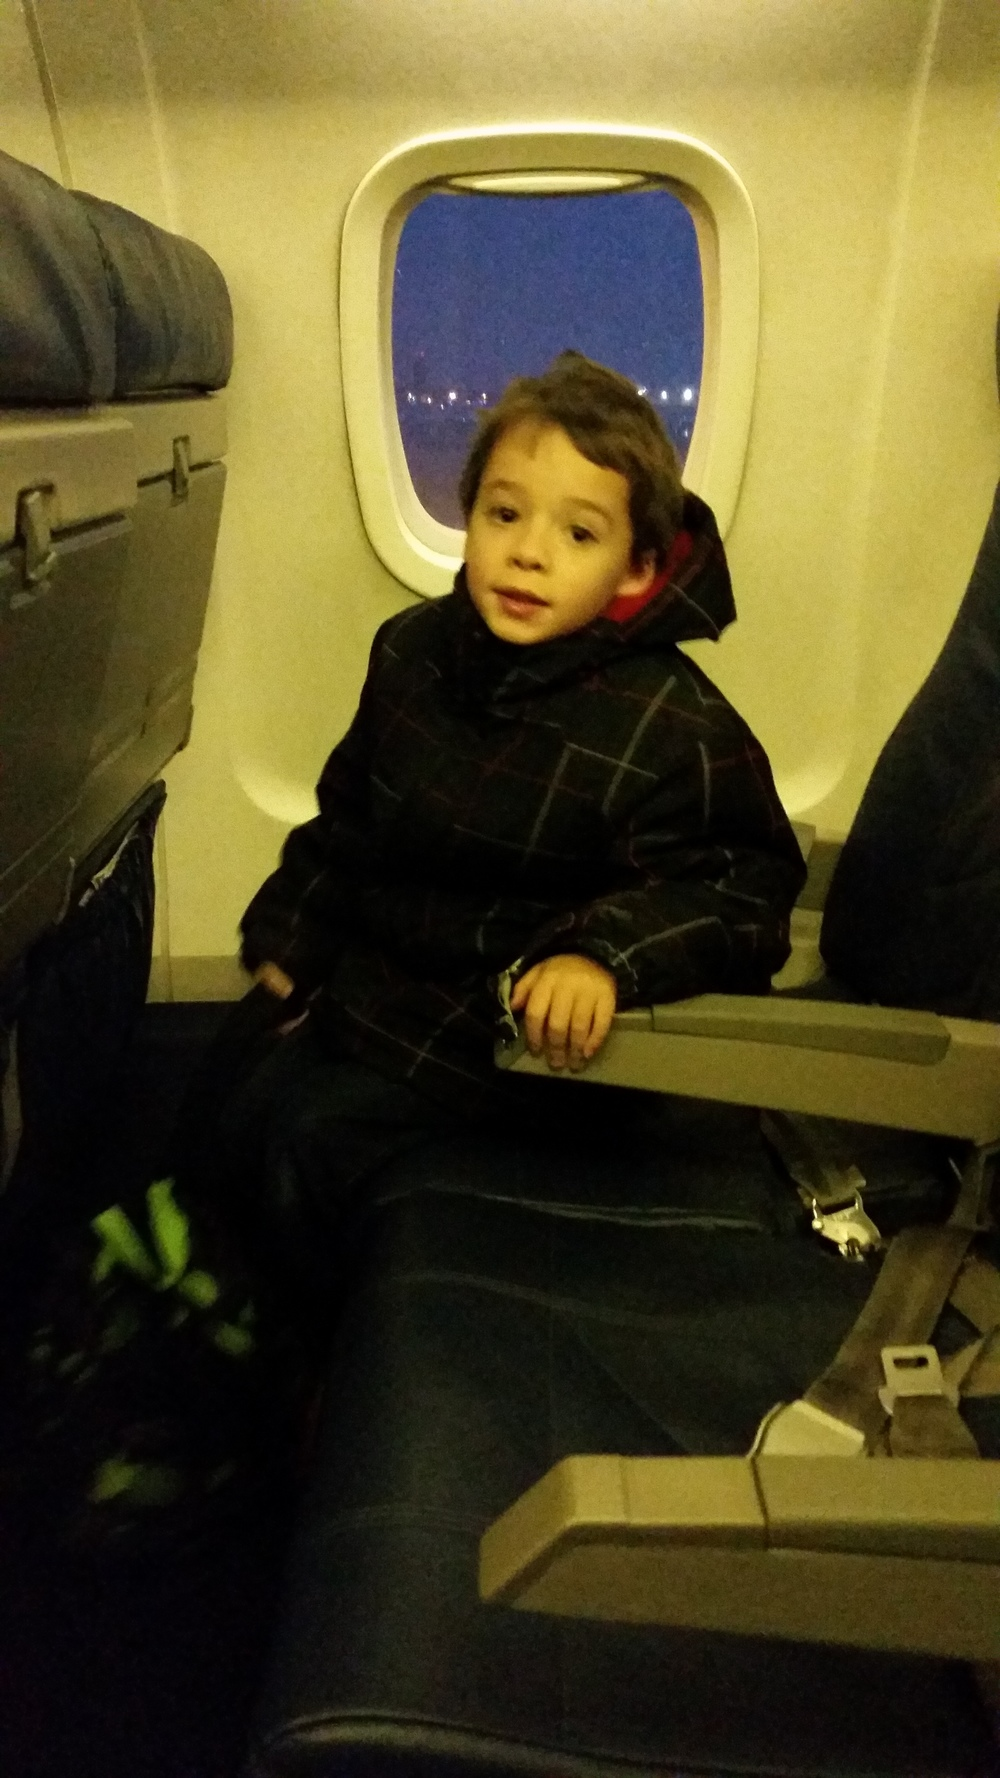 Emerson finds his seat on the airplane.